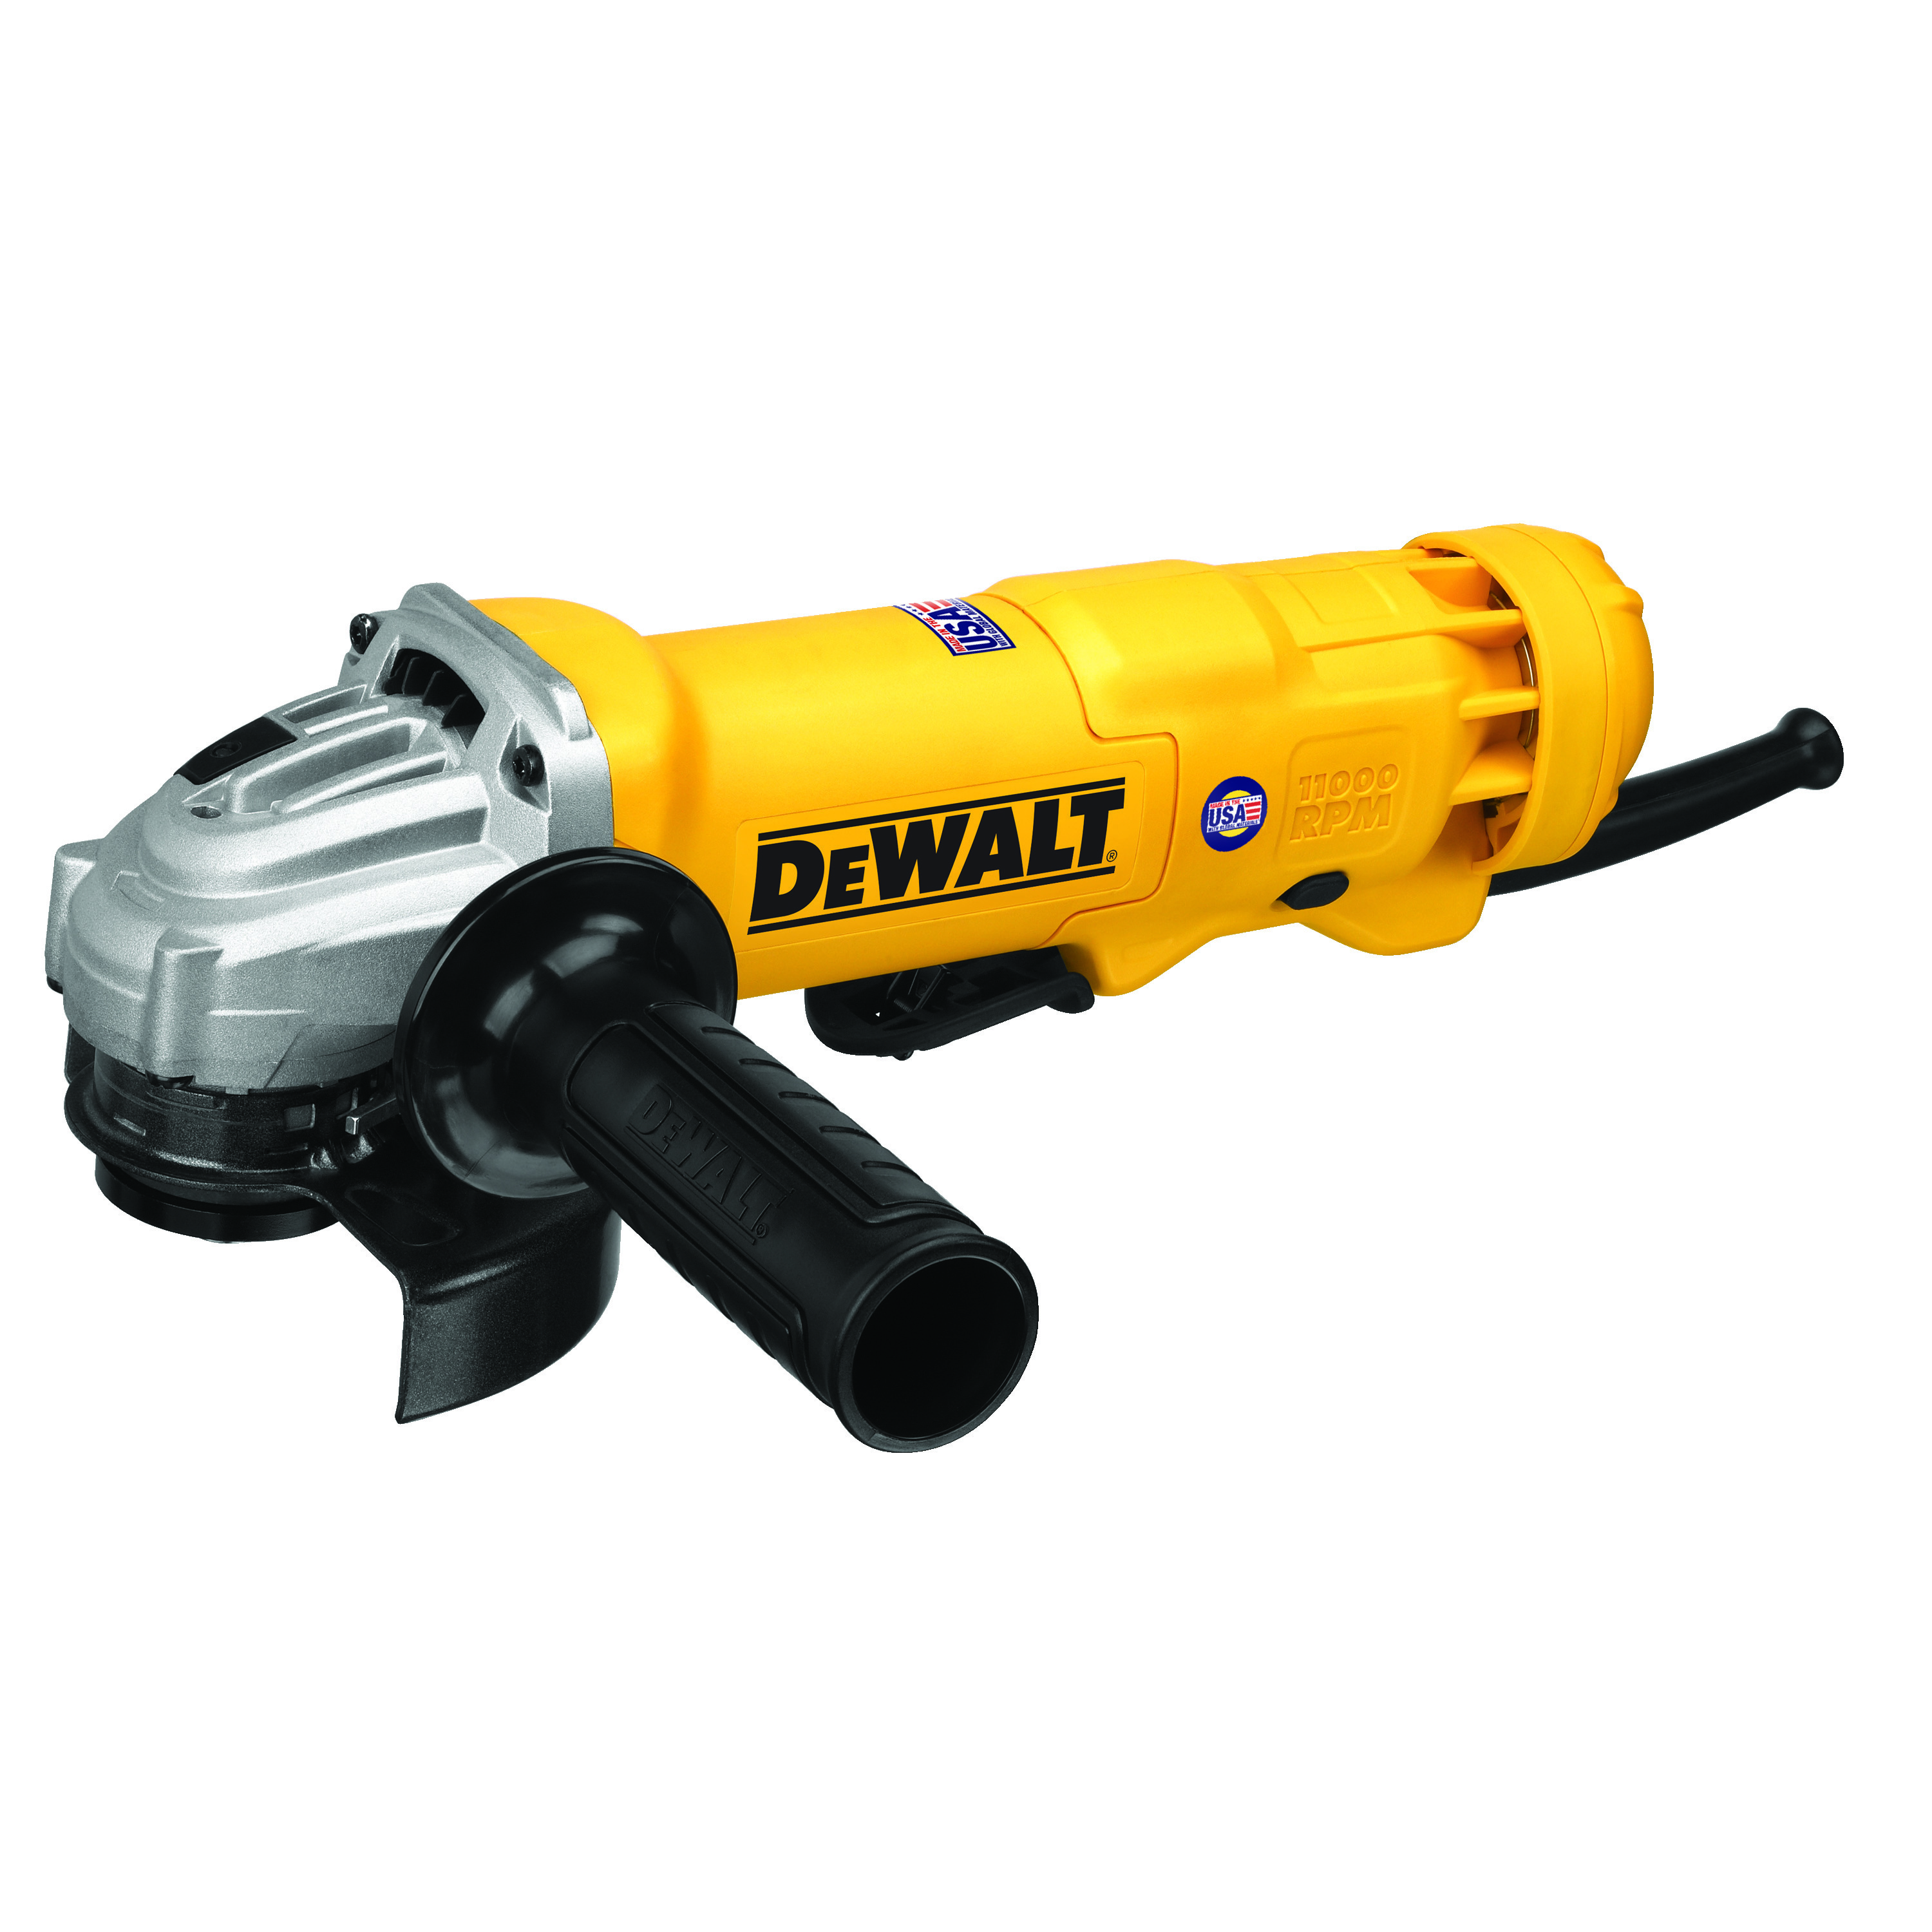 DeWALT® DWE402 Small Angle Grinder, 4-1/2 in Dia Wheel, 5/8-11 Arbor/Shank, 120 VAC, For Wheel: Quick-Change™, Yellow, Yes, Lock-On Paddle Switch